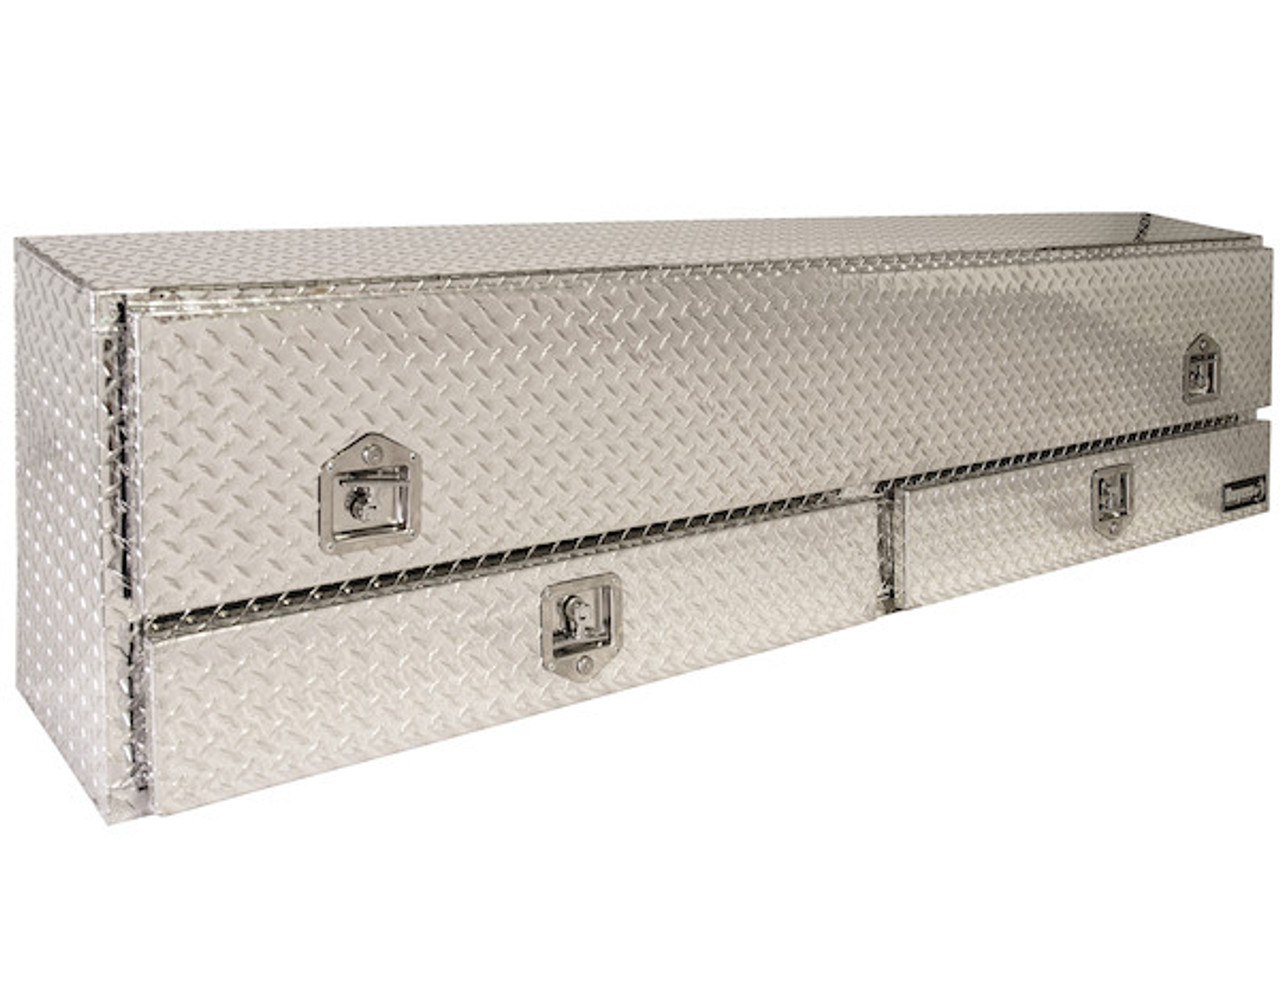 """1705651 BUYERS PRODUCTS DIAMOND TREAD ALUMINUM CONTRACTOR TRUCK TOOLBOX WITH LOWER DRAWERS 21""""HX13.5""""DX88""""W"""